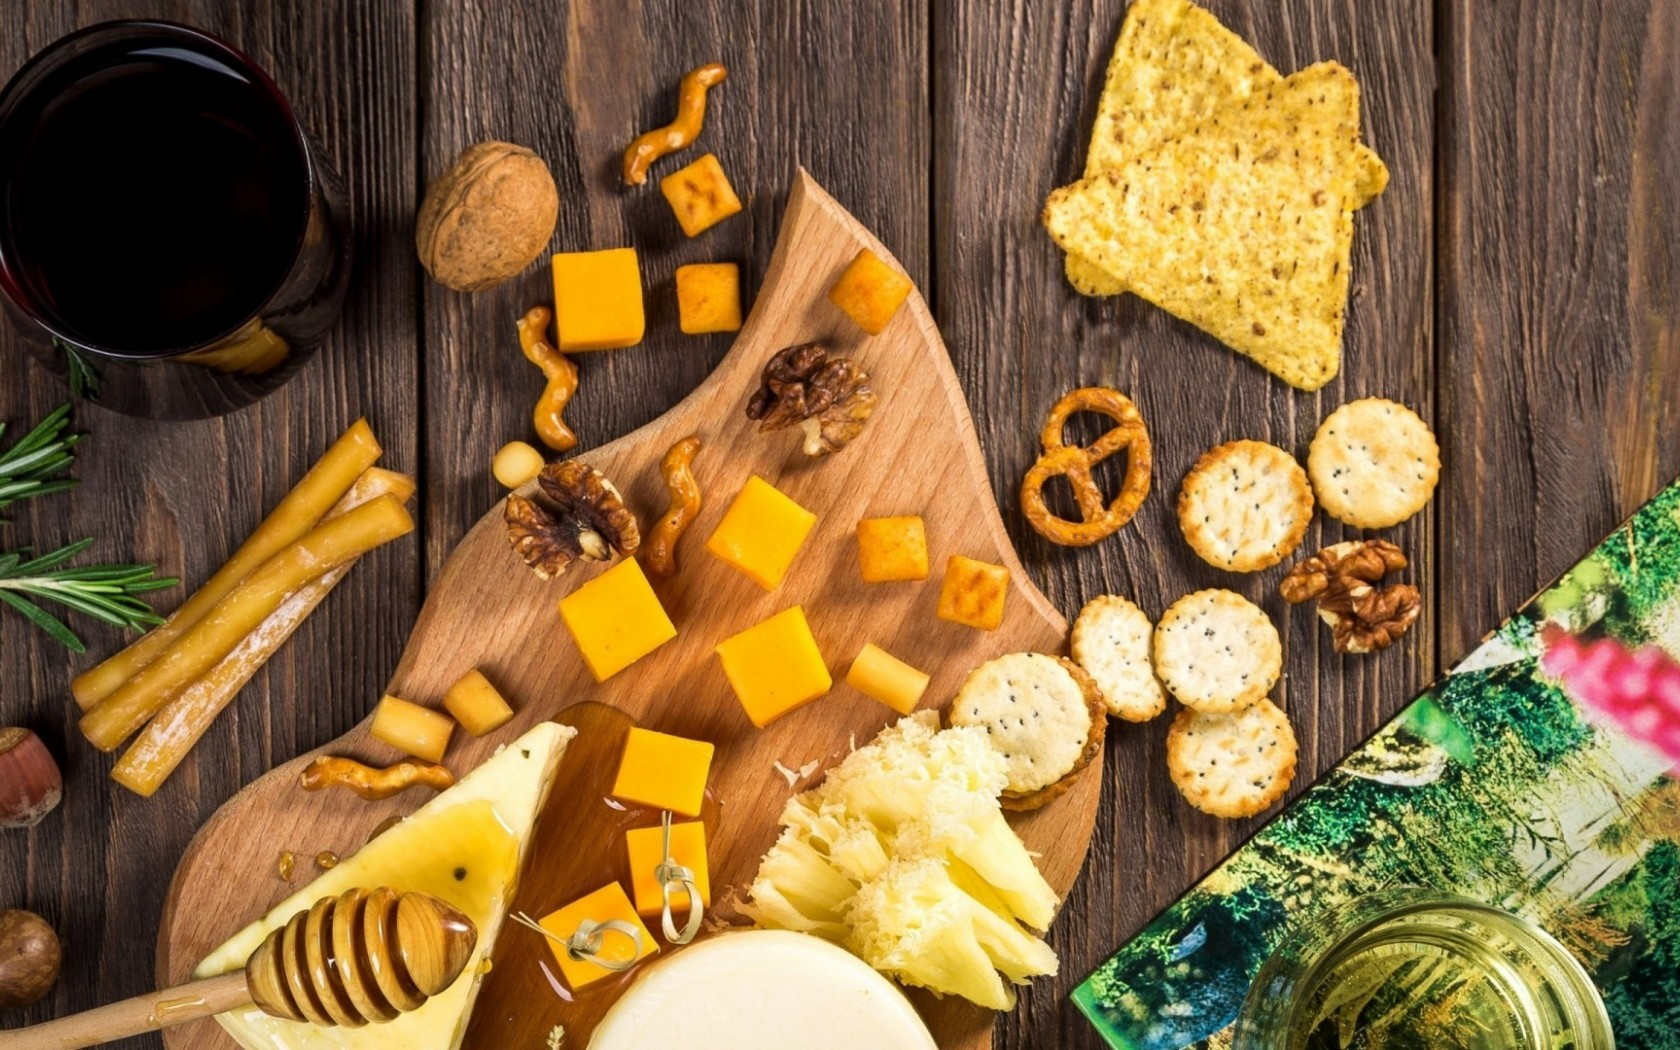 Cheese, honey and nuts top view HD Wallpaper